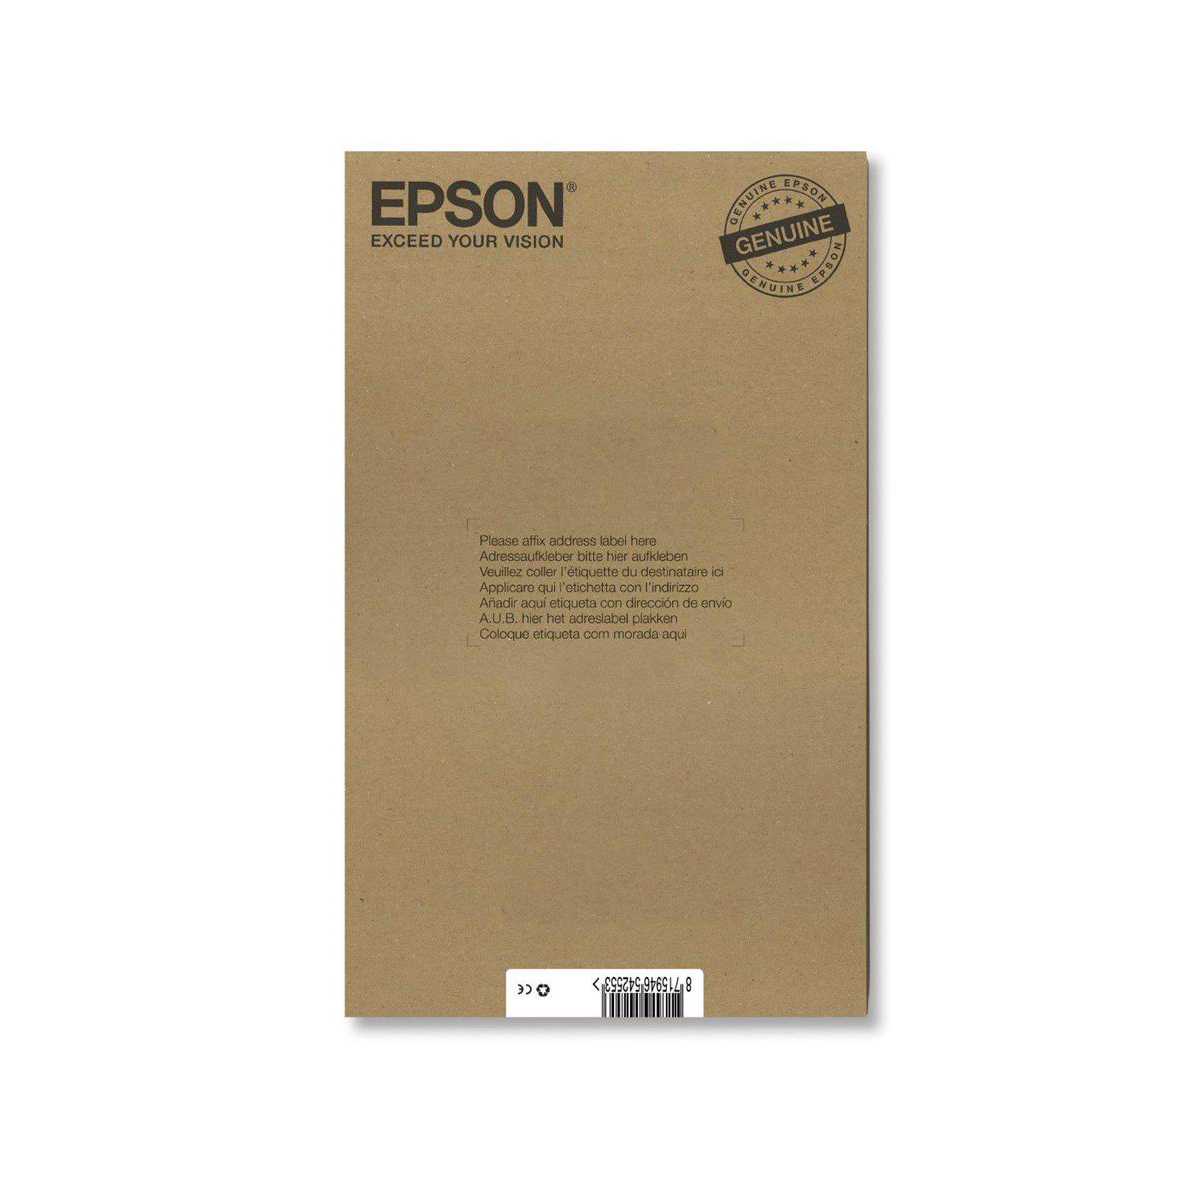 Epson T0807 Hummingbird InkCart Blk/Cyan/Mag/Yel/LC/LM 44.4ml C13T08074510 [Pack 6] *3to5 Day Leadtime*